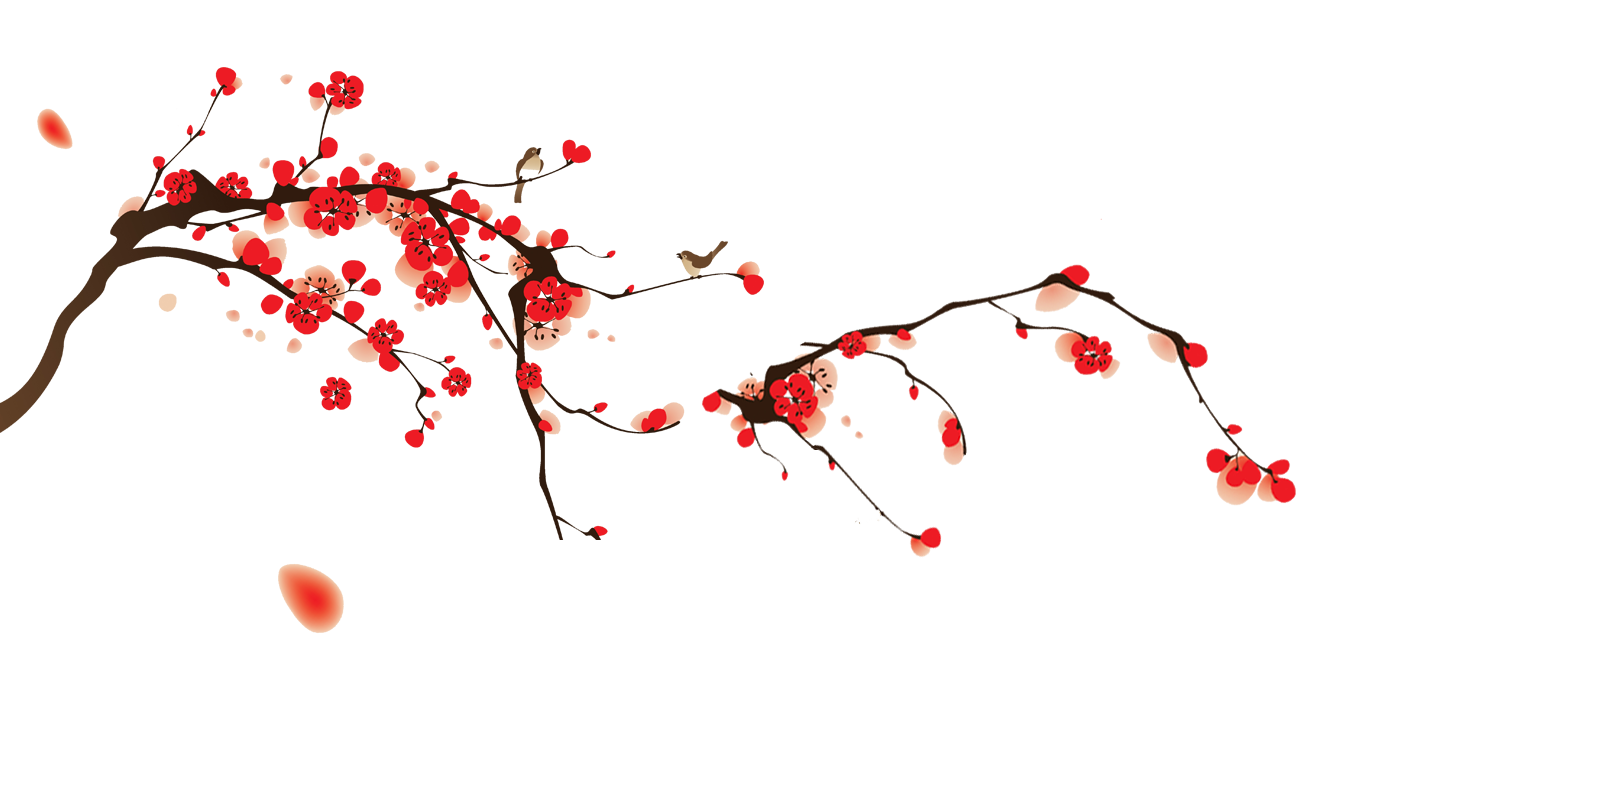 Cherry Blossom Png Free Vector Download image #45507